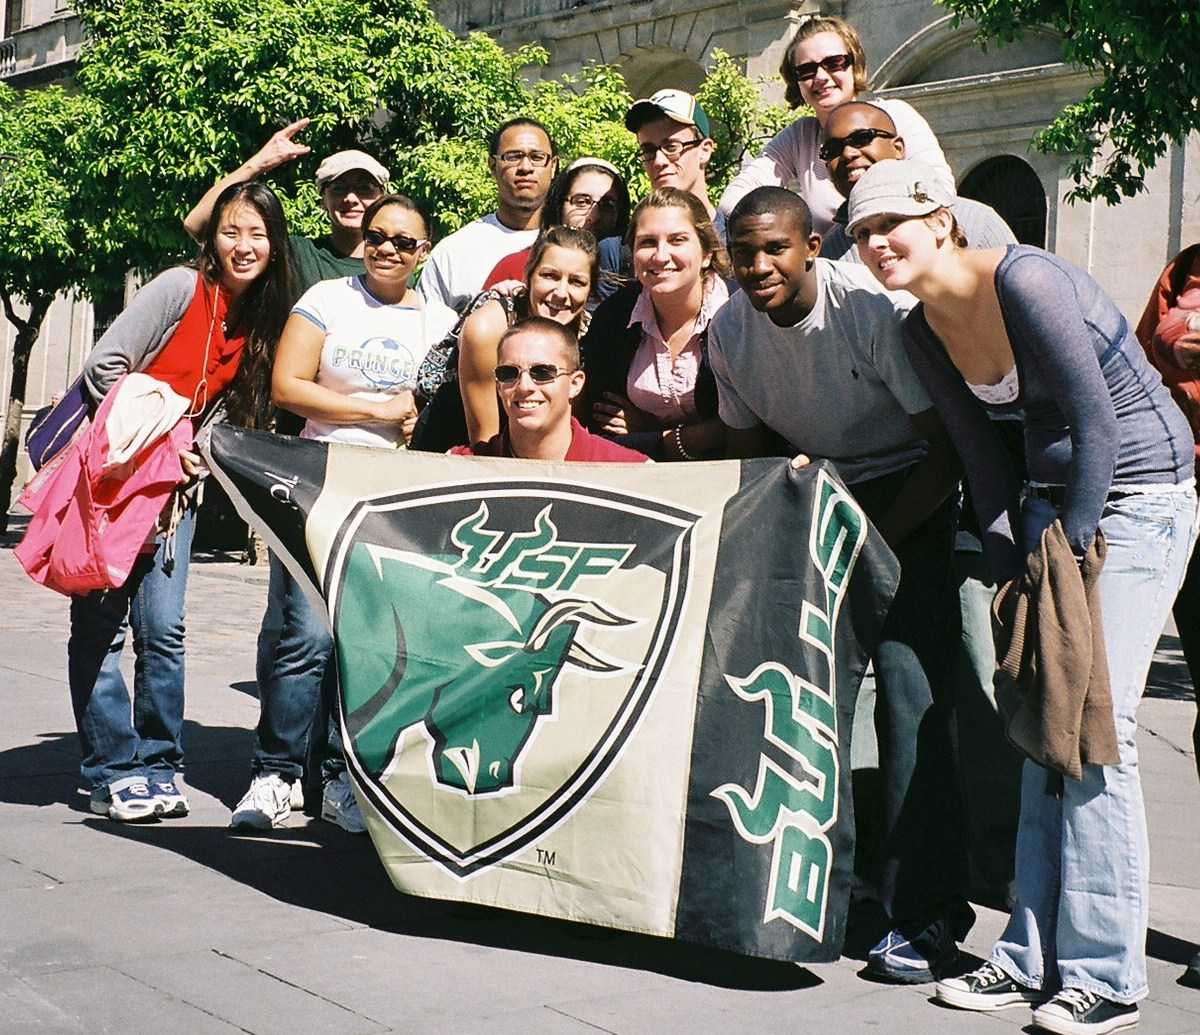 DR. MERRICK'S WEBSITE FOR THE USF STUDY ABROAD PROGRAM in ...